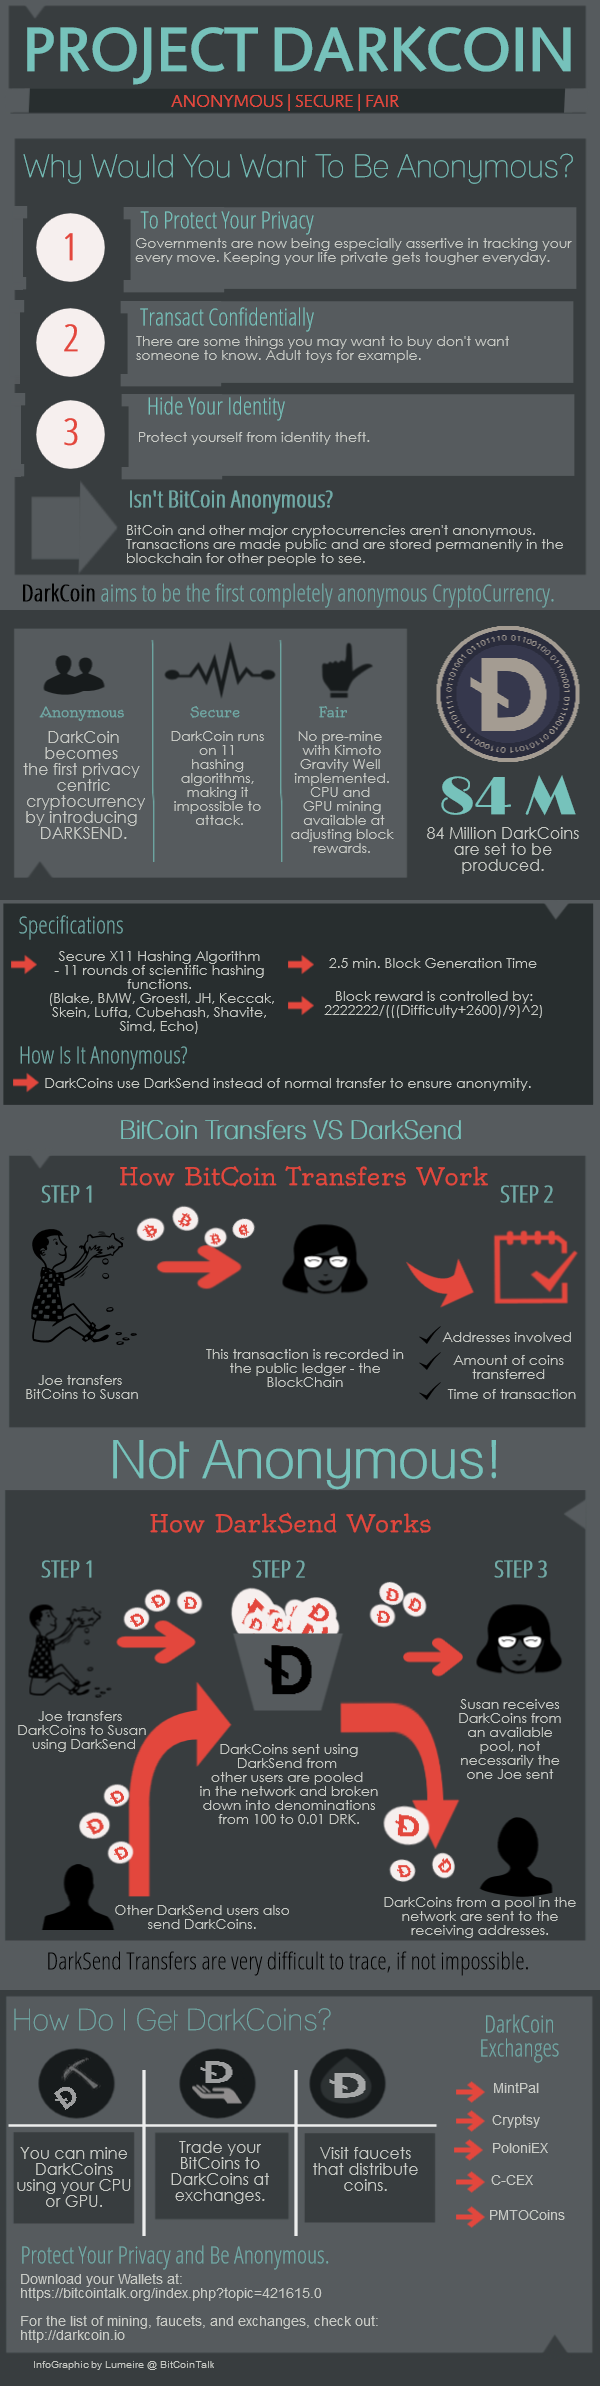 Darkcoin Information Infographic